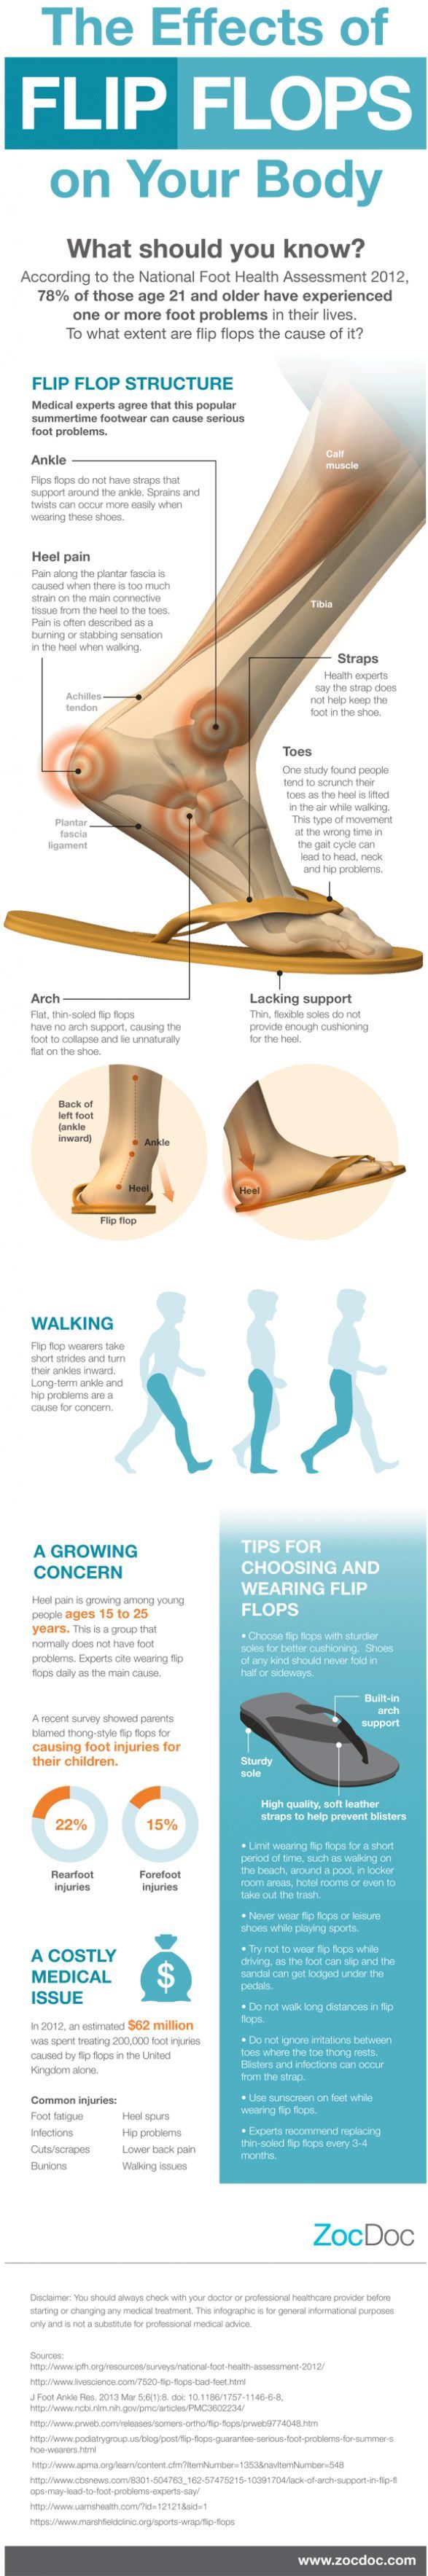 Health Effects Of Flip Flops On Your Feet via topoftheline99.com